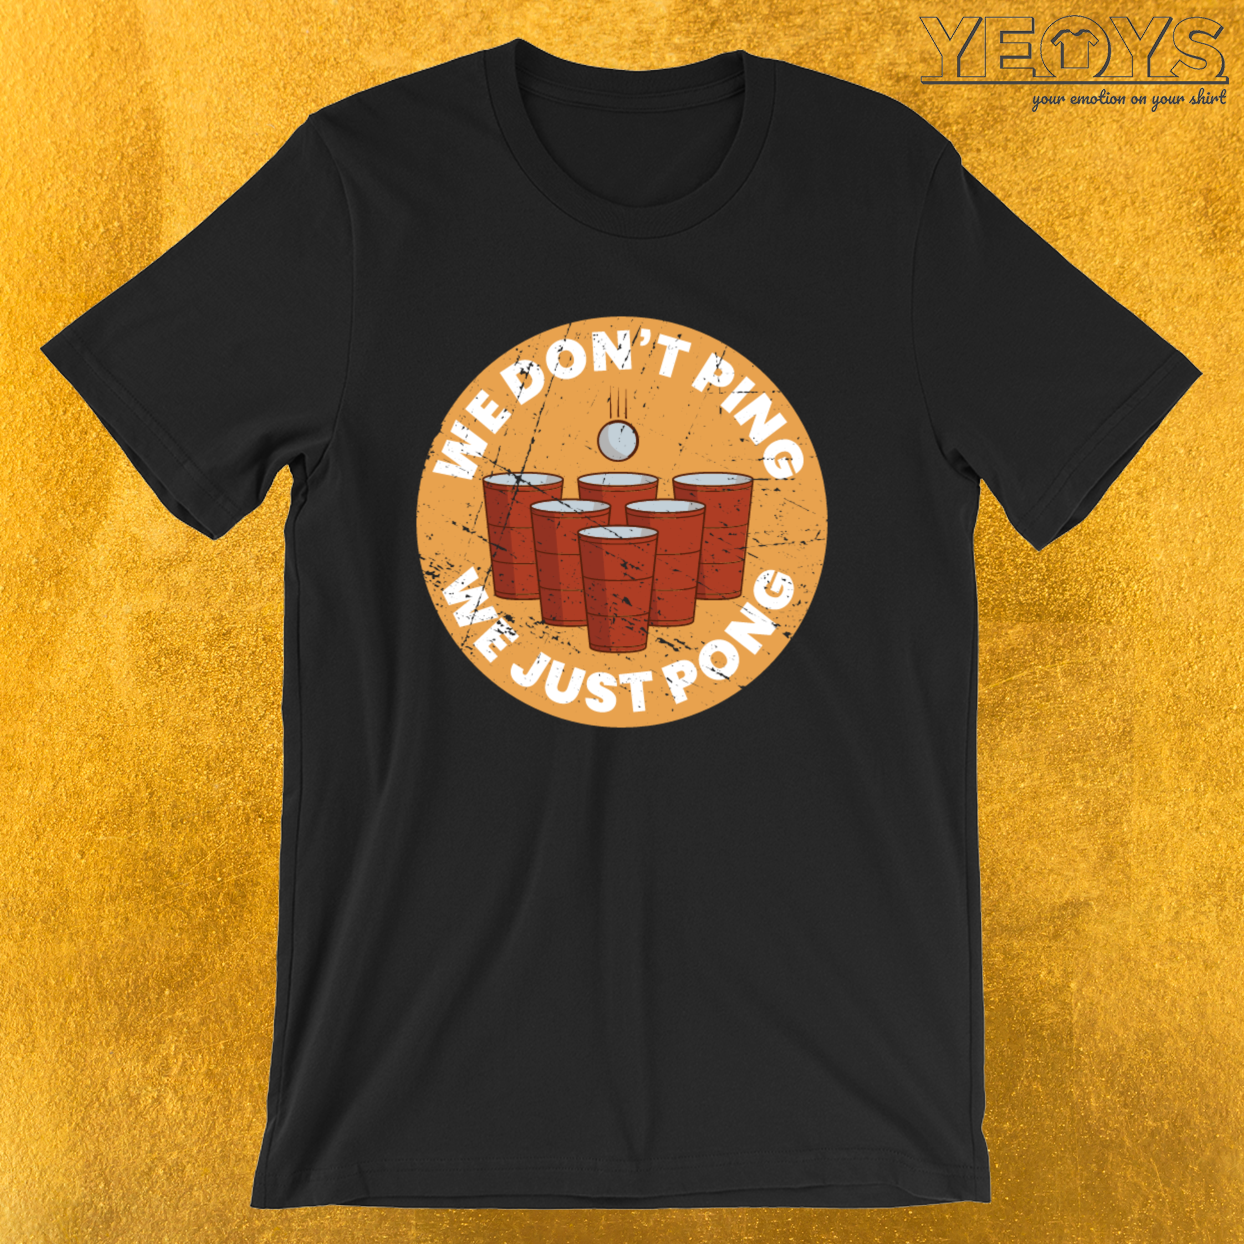 We Don't Ping We Just Pong – Funny Beer Pong Tee